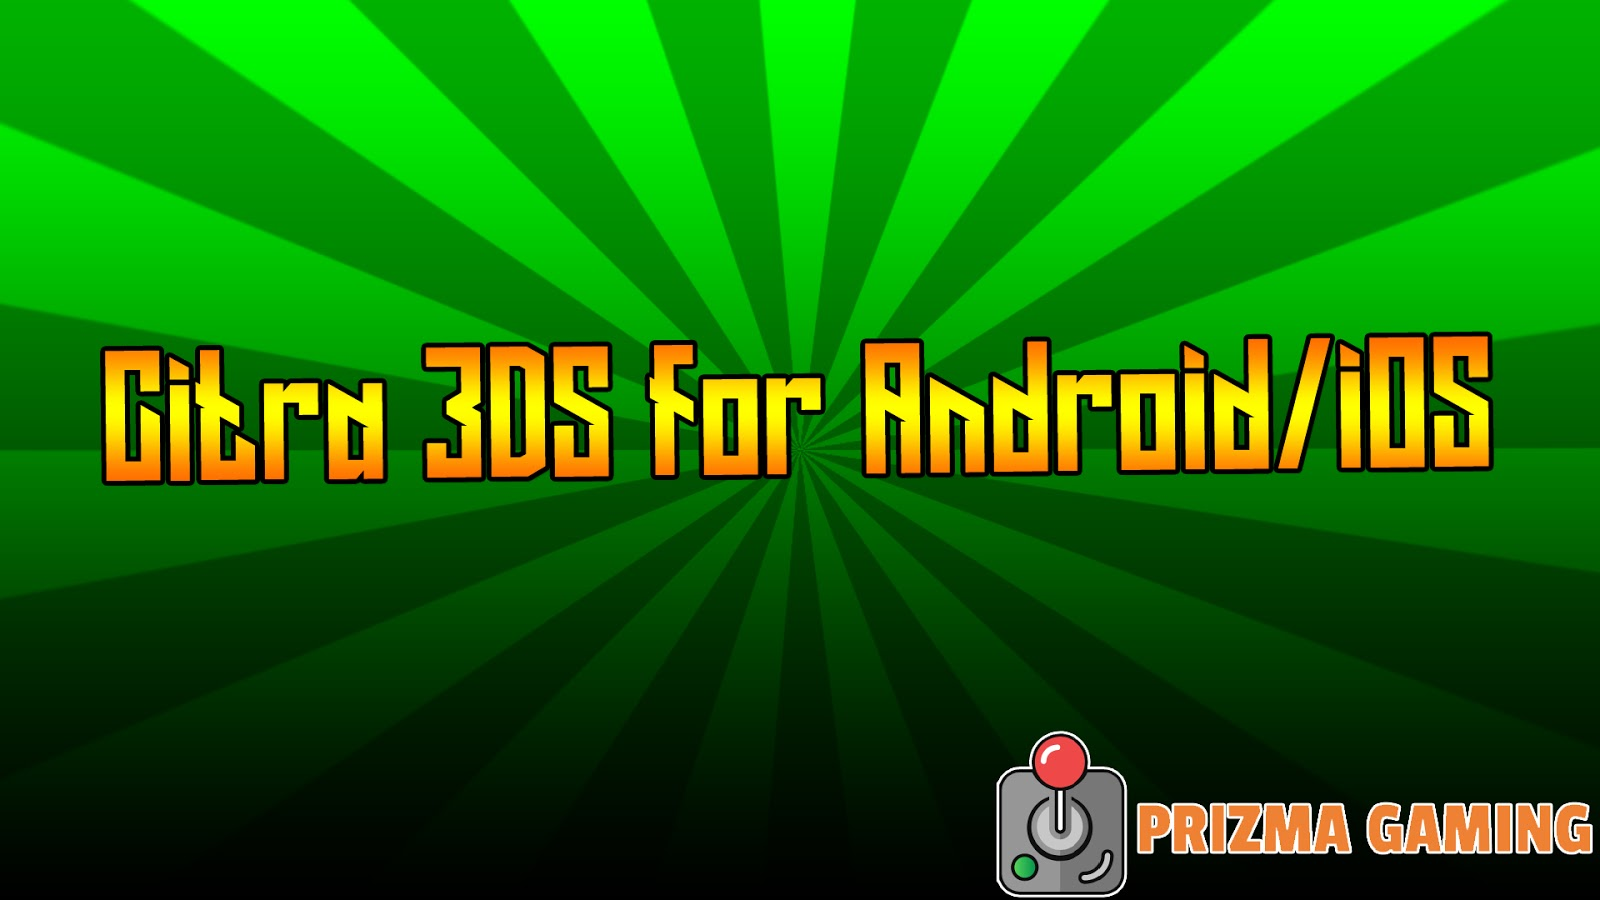 Citra 3DS Emulator for Android - PrizMa Gaming » No 1